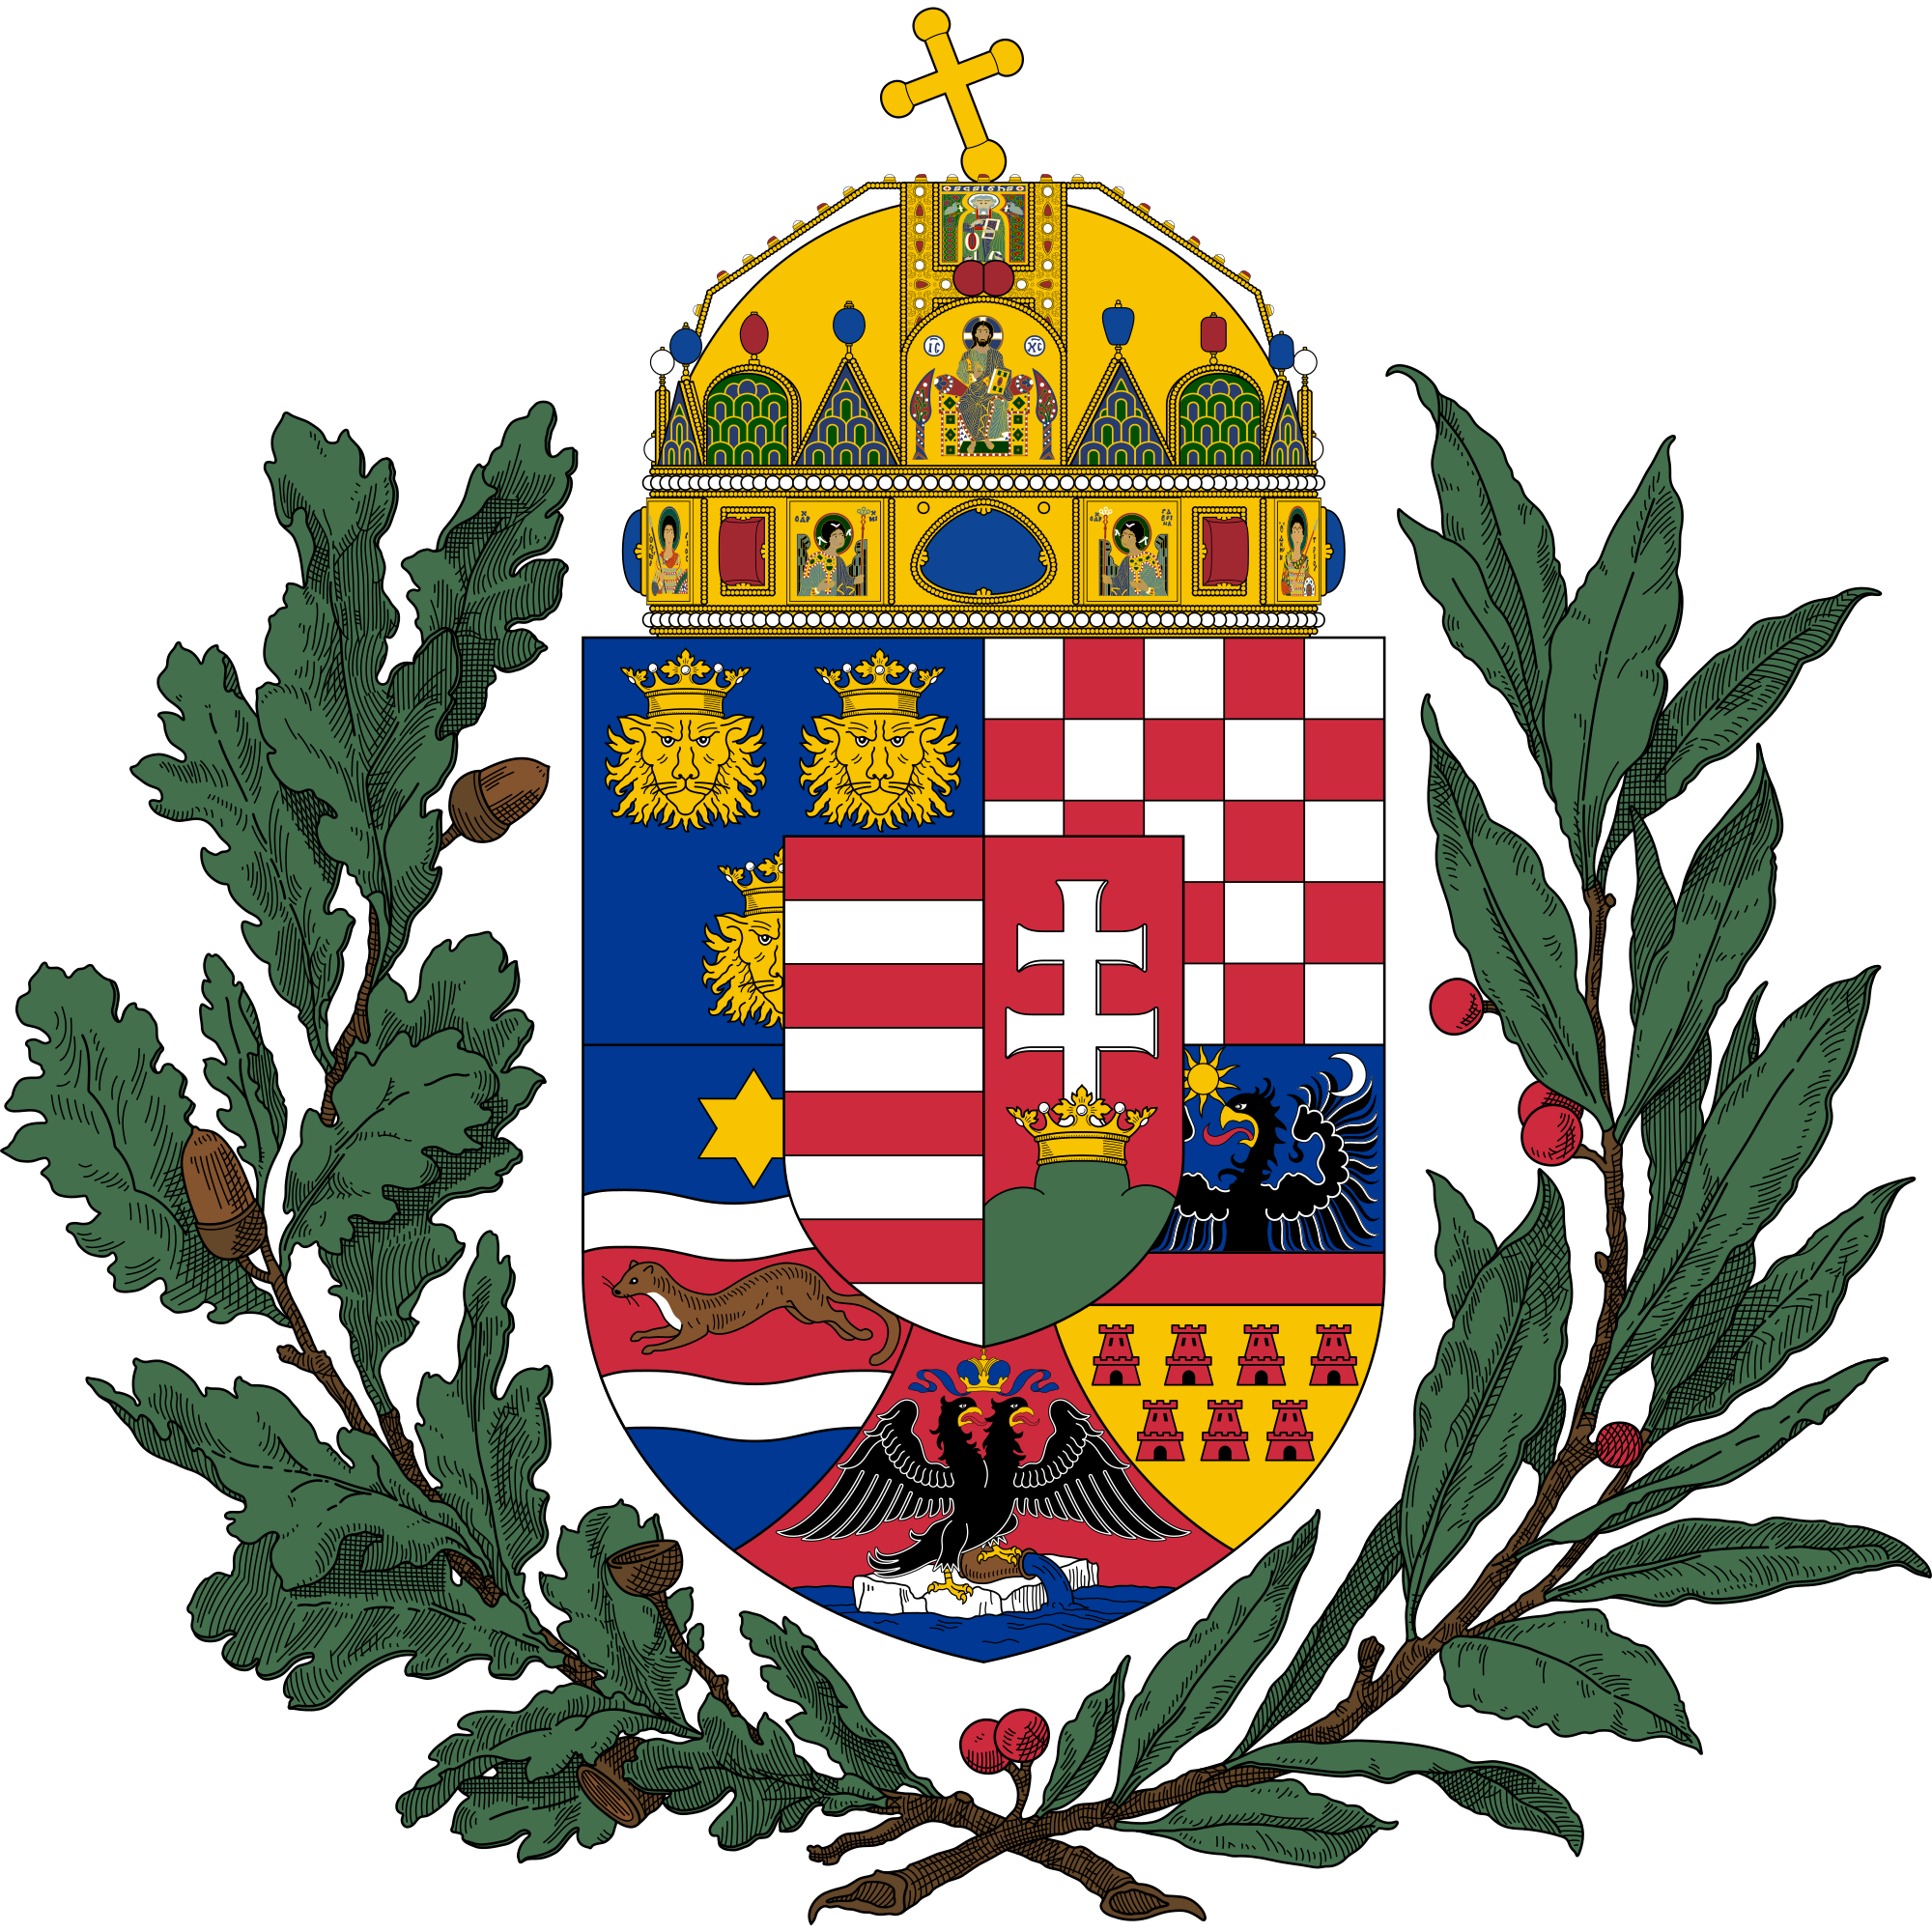 Crown made of branches clipart free File:Coat of arms of the Lands of the Holy Hungarian Crown (1896 ... free